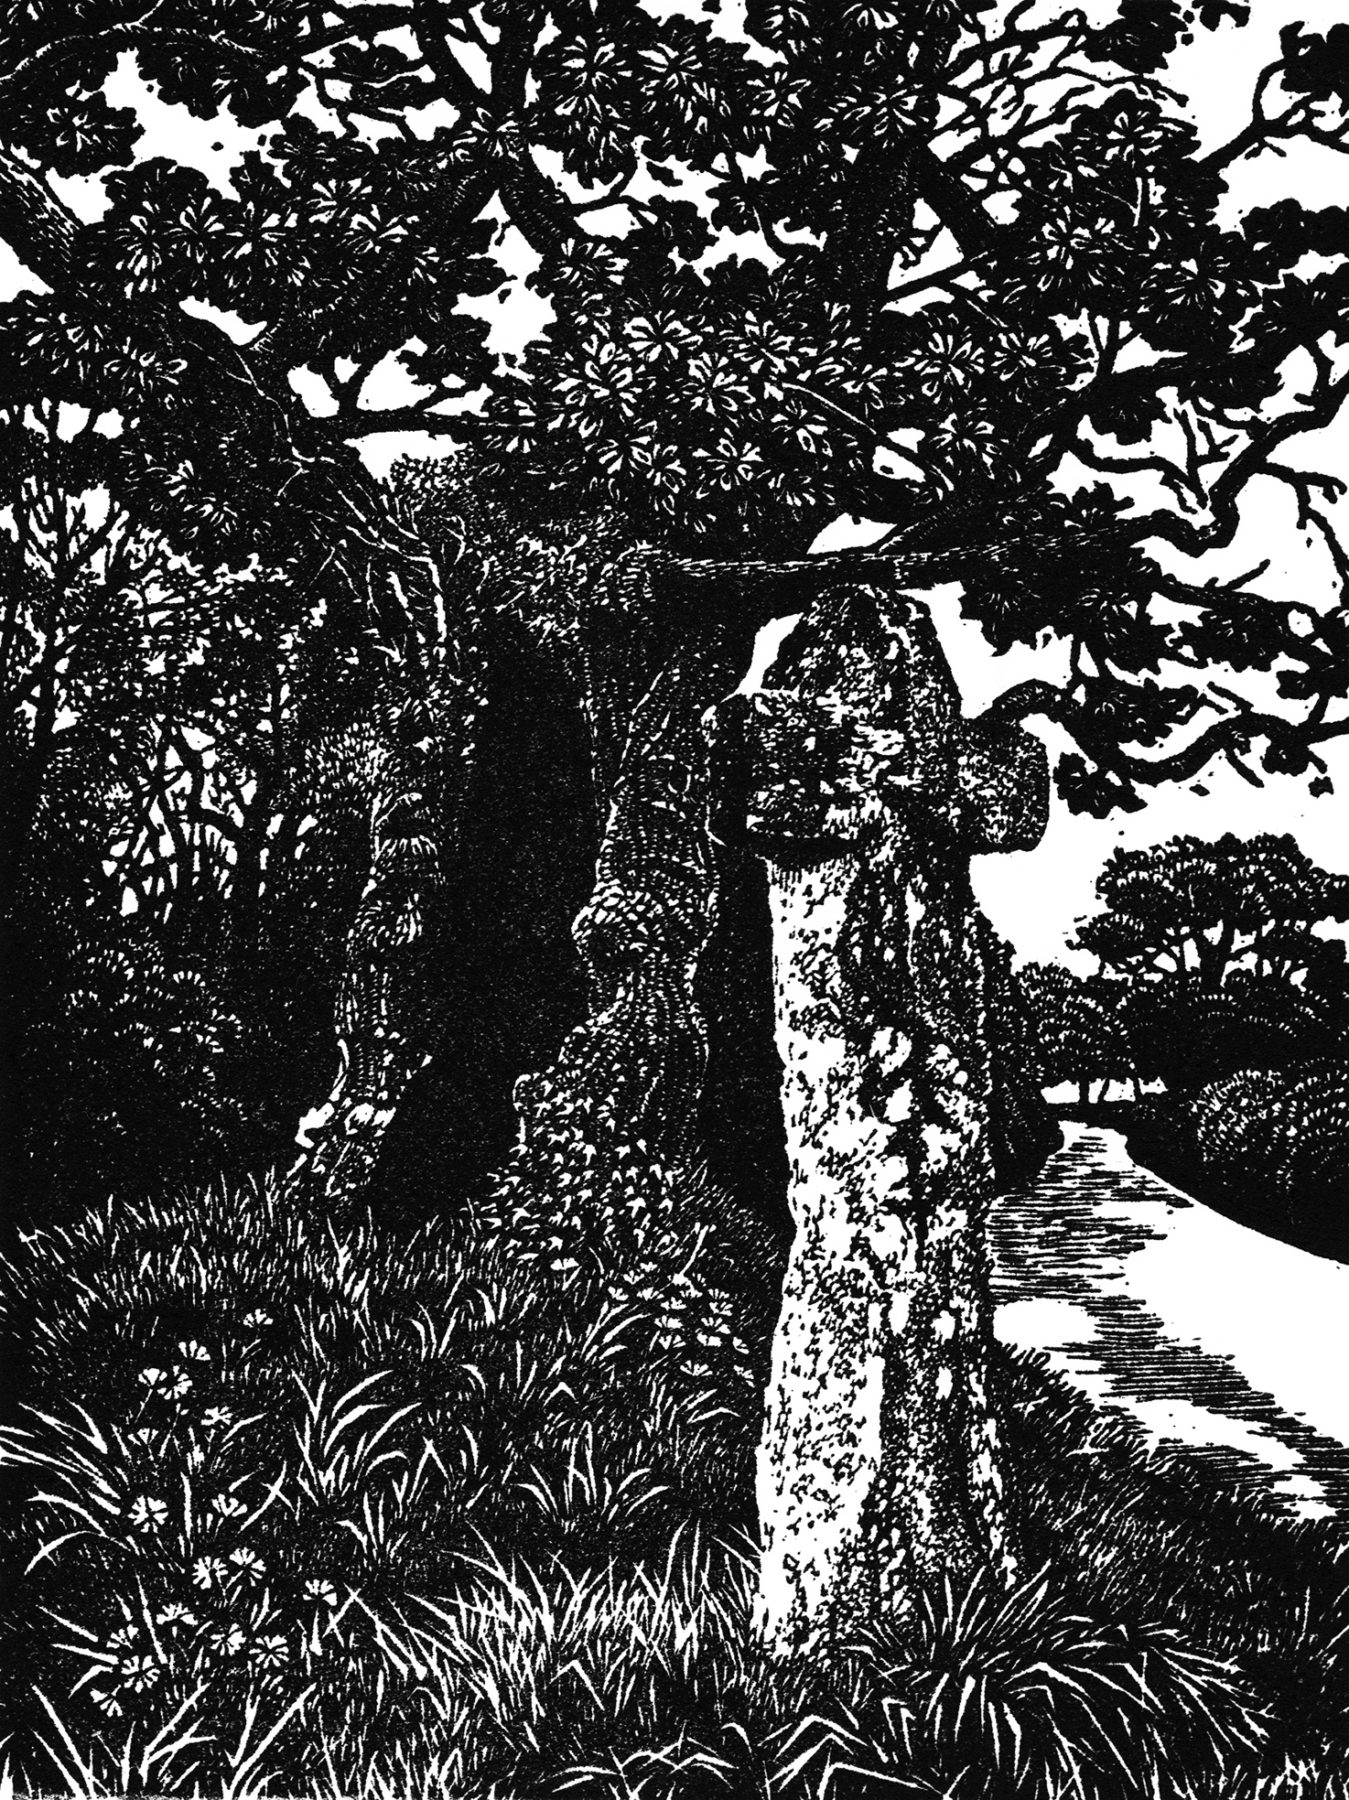 A black and white woodcut of an ancient looking tree with a hole at its centre, alongside a cross with moss growing on top of it